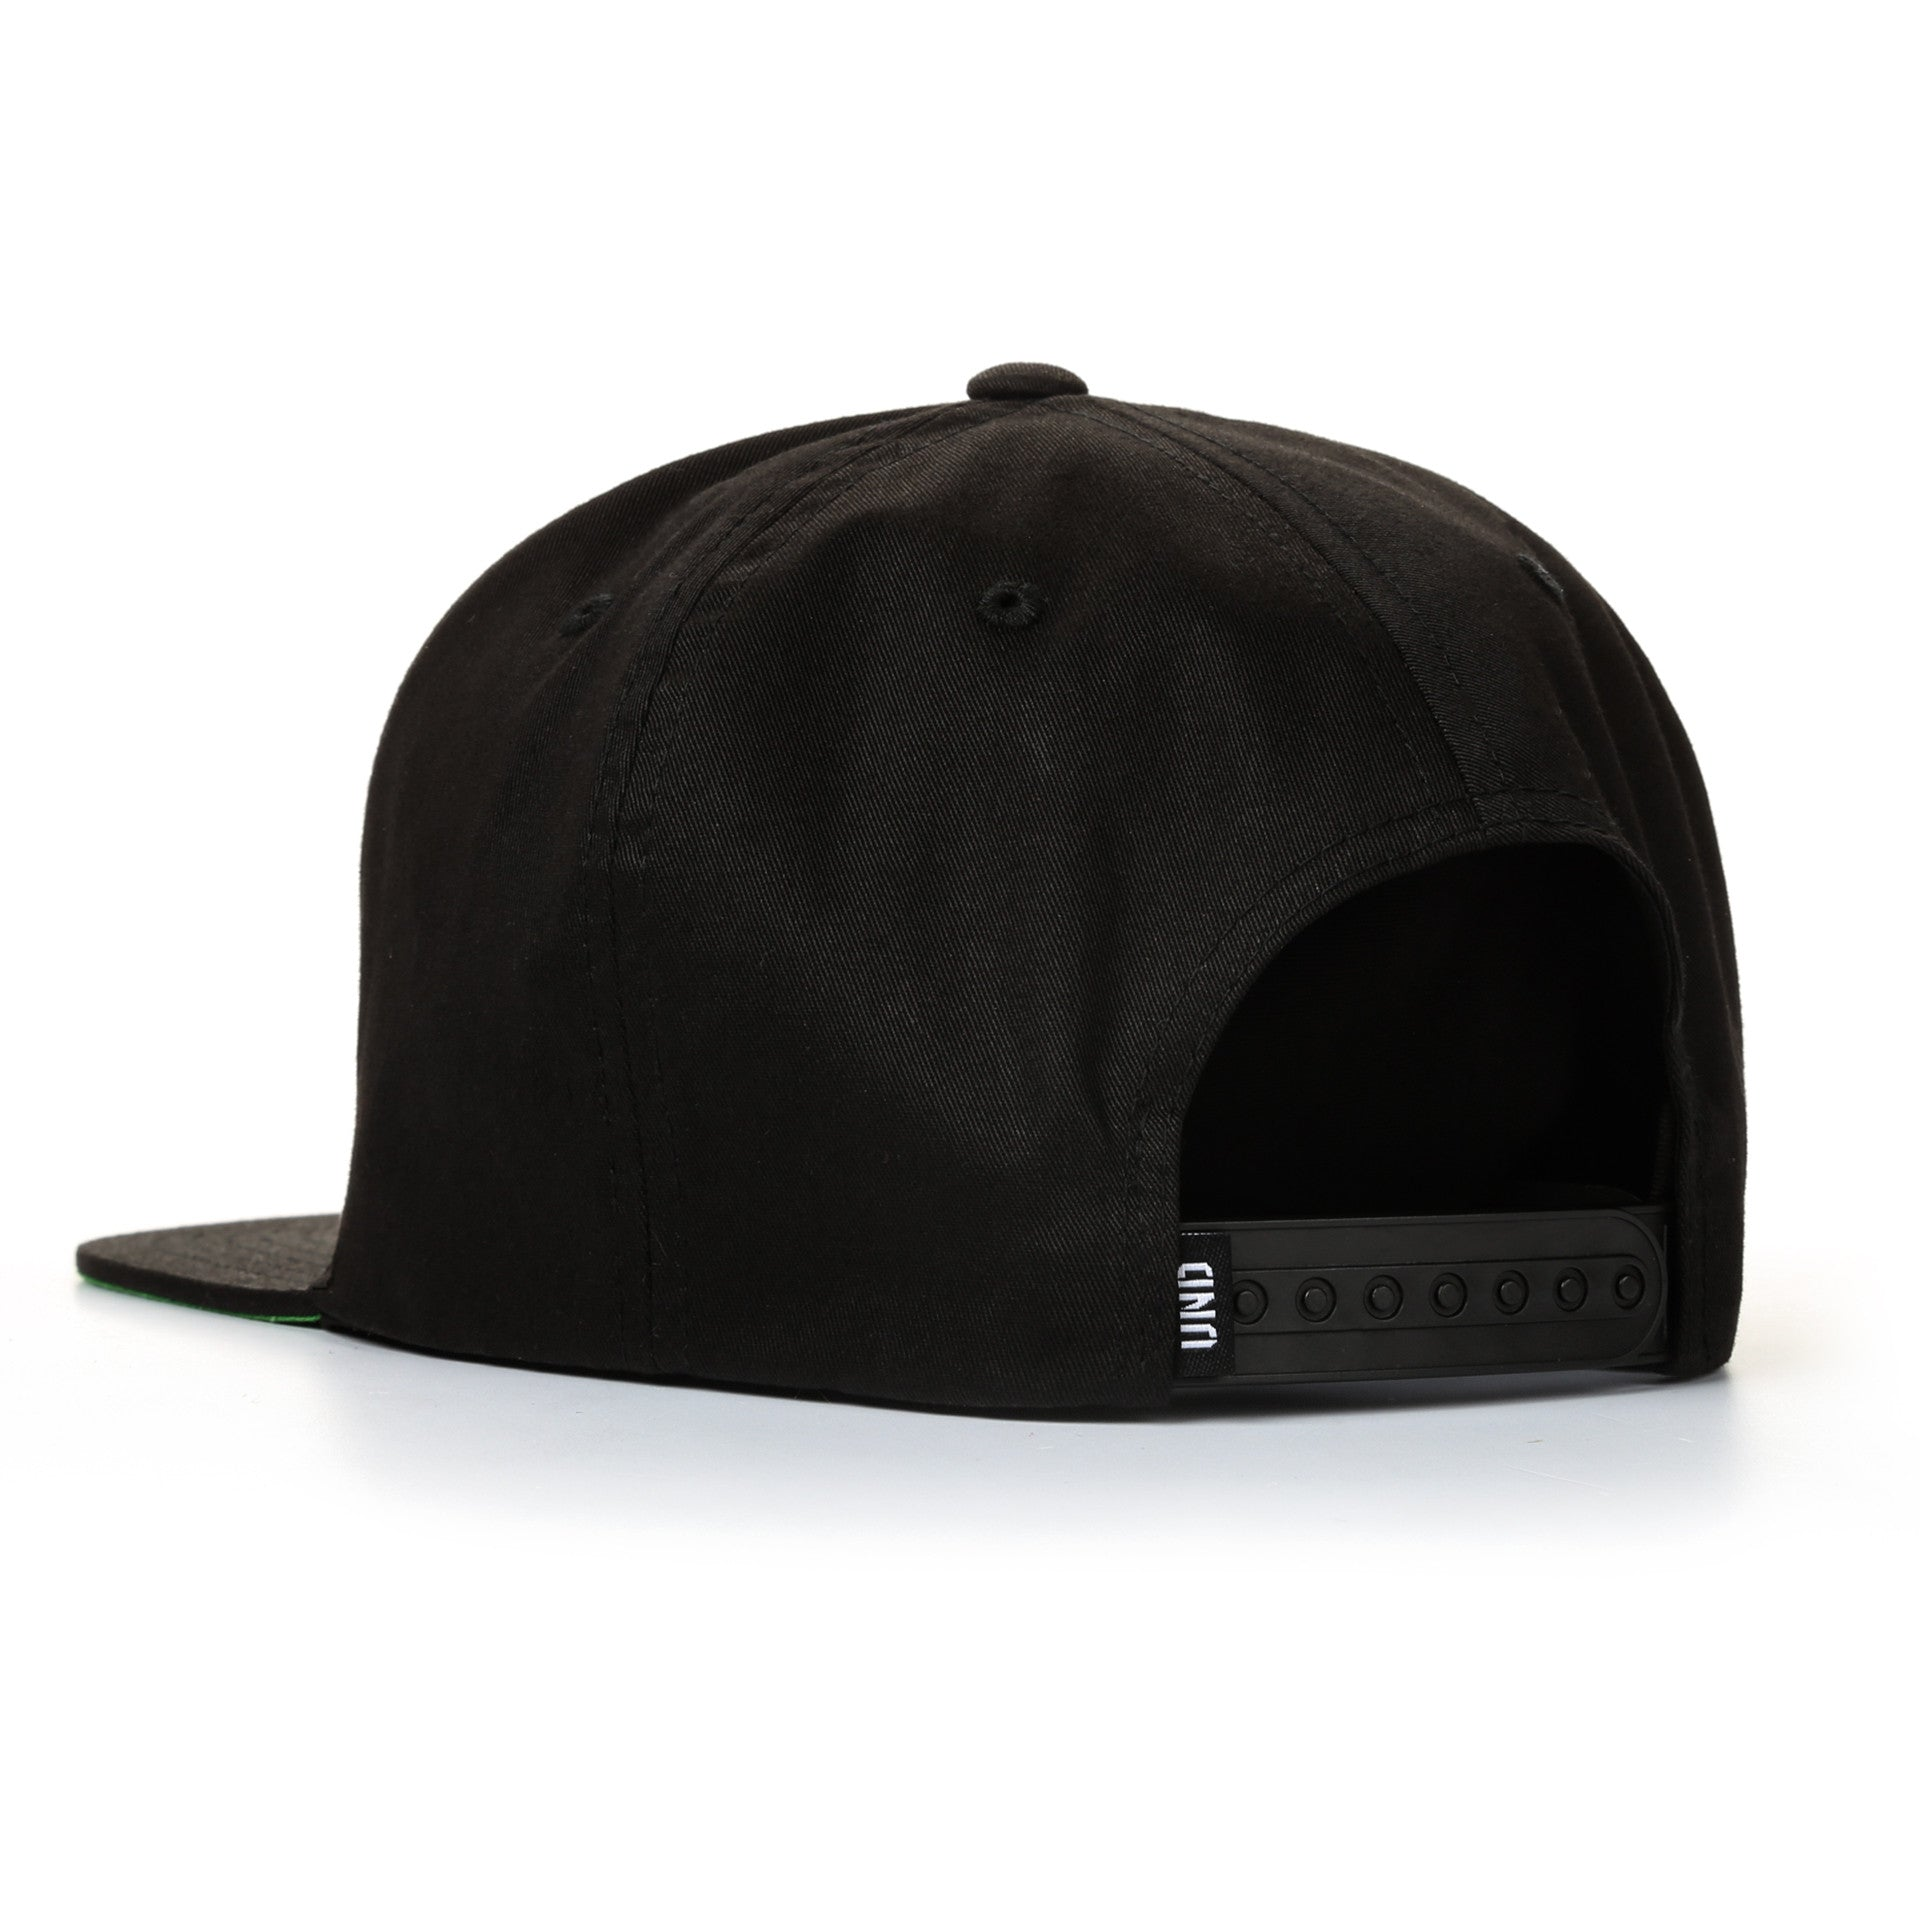 688e7f37bee16 Undefeated 5 Strike Snapback - Black Yellow - New Star